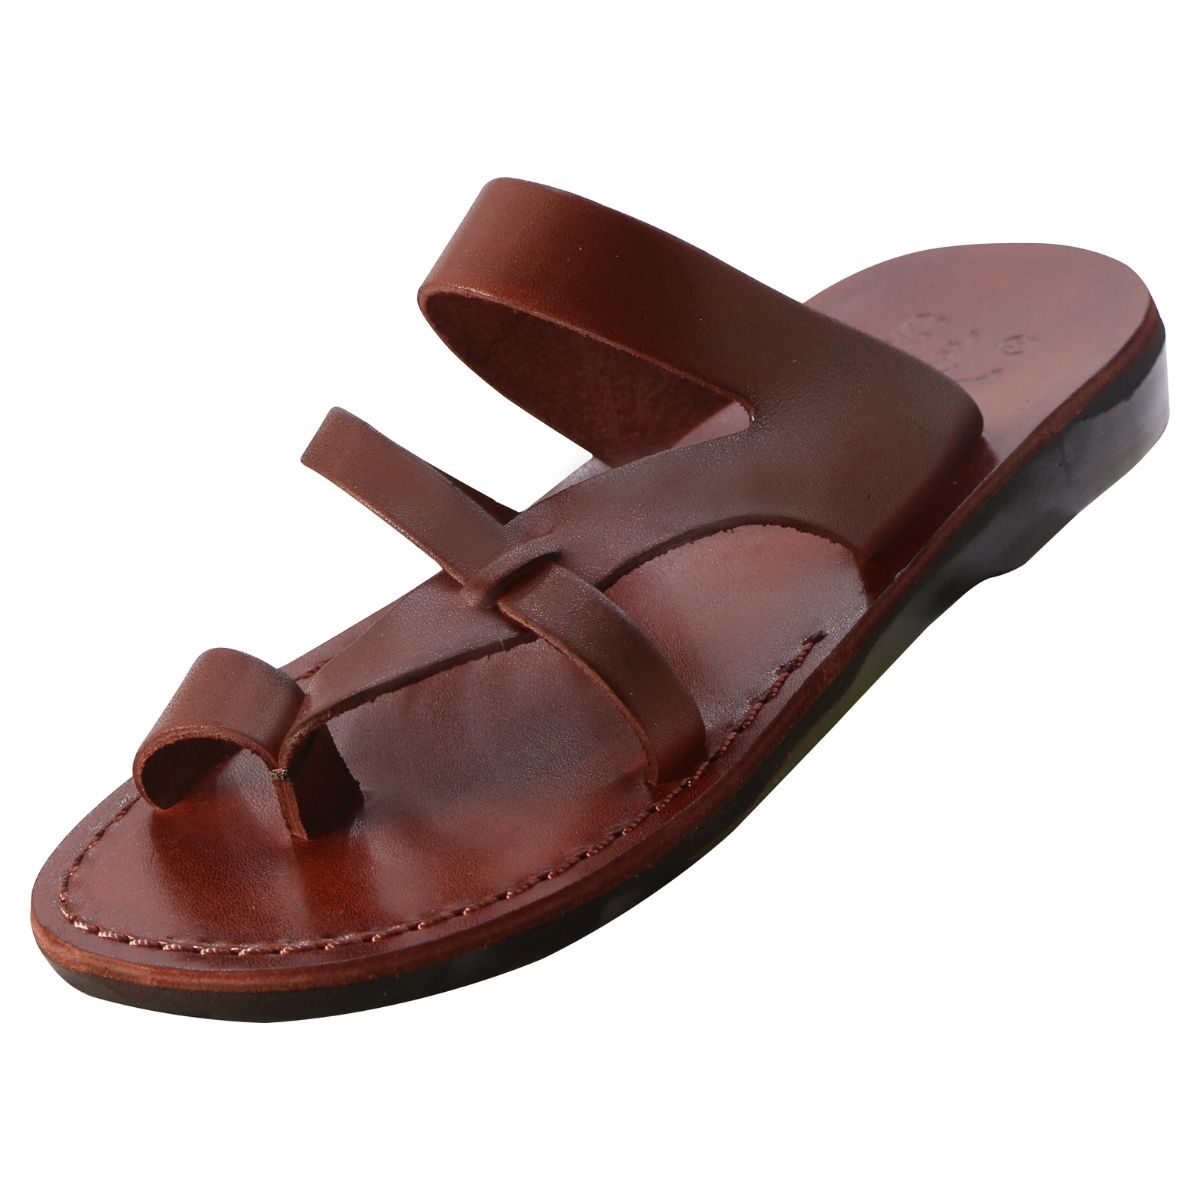 532fa44b7 Buy Toe Strap Flip Flop Handmade Leather Sandals - Alona